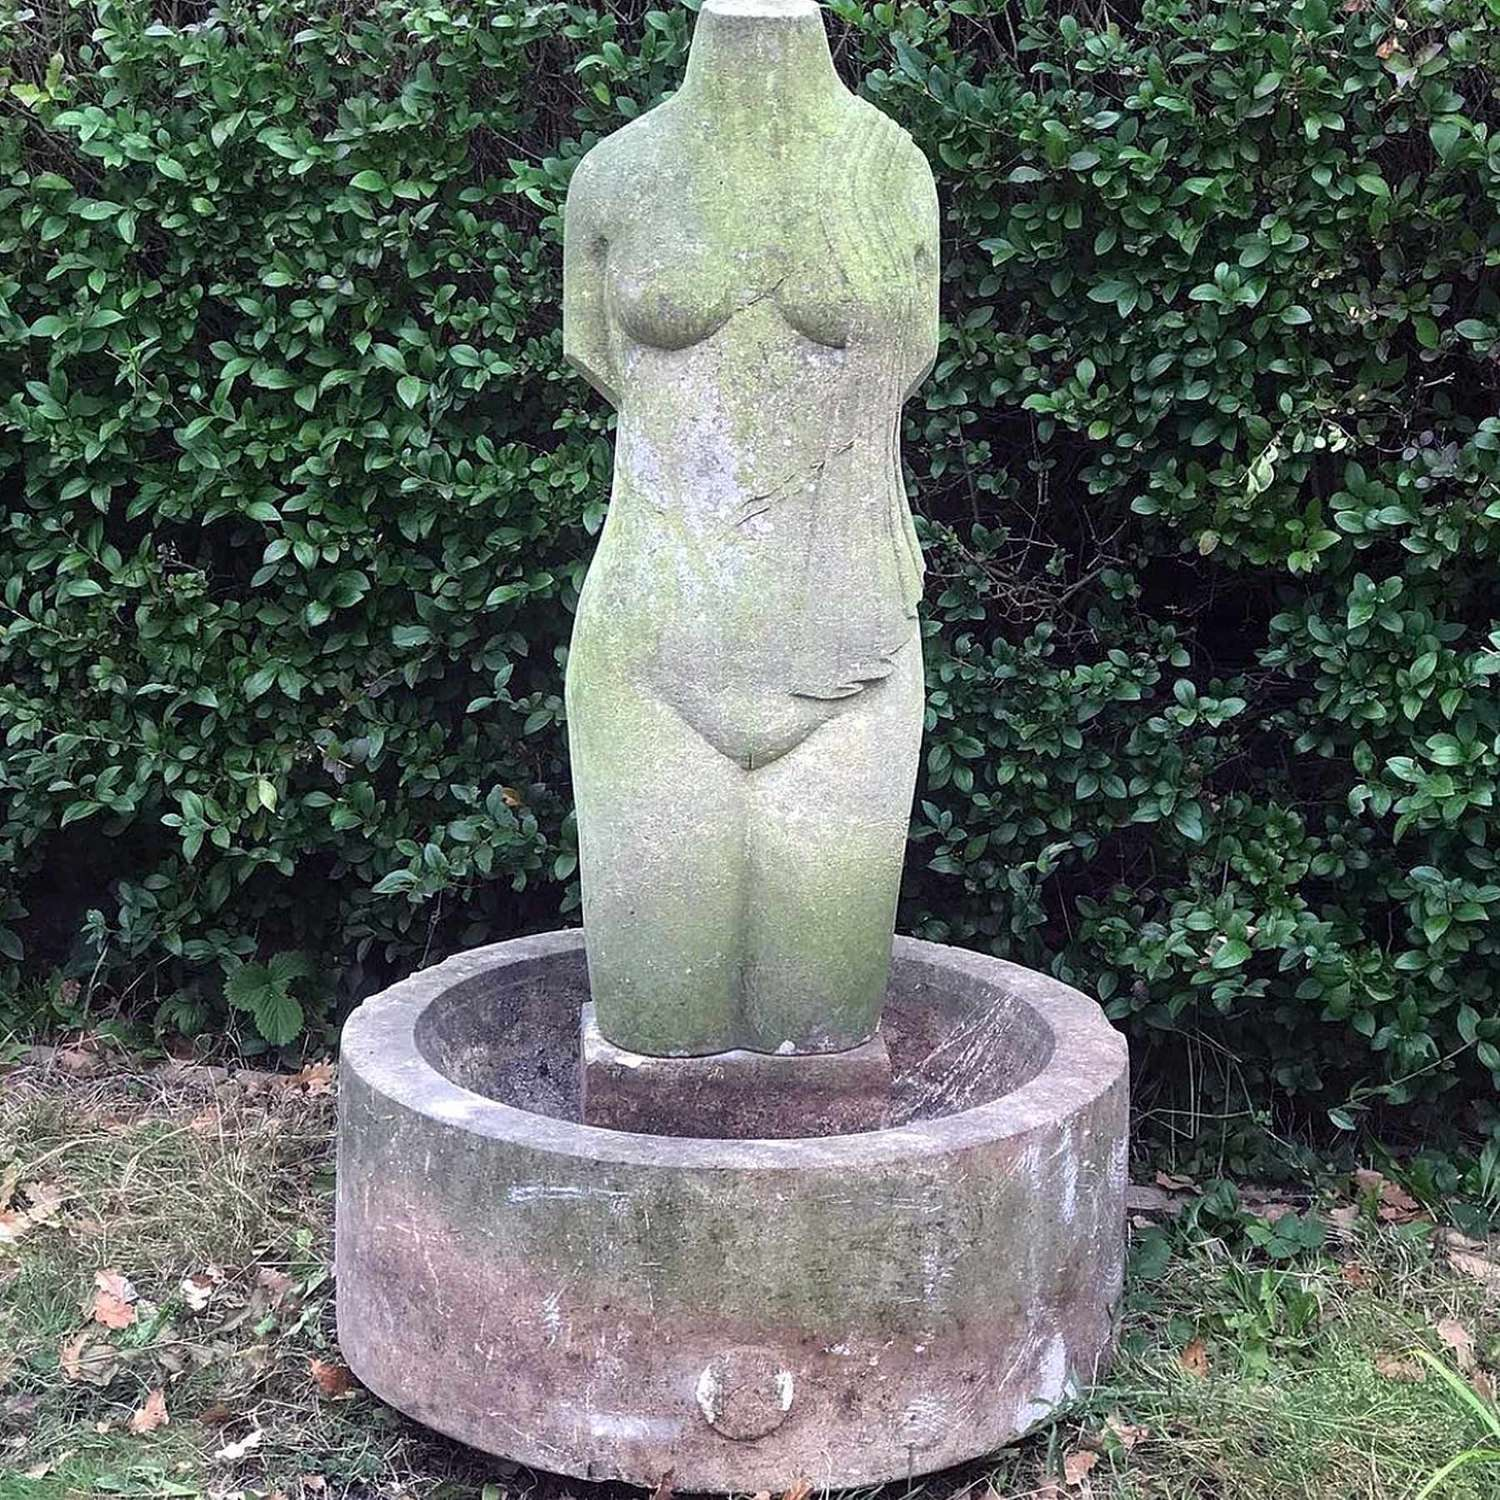 20th century Limestone Sculpture / Bird Bath by Keith Newstead